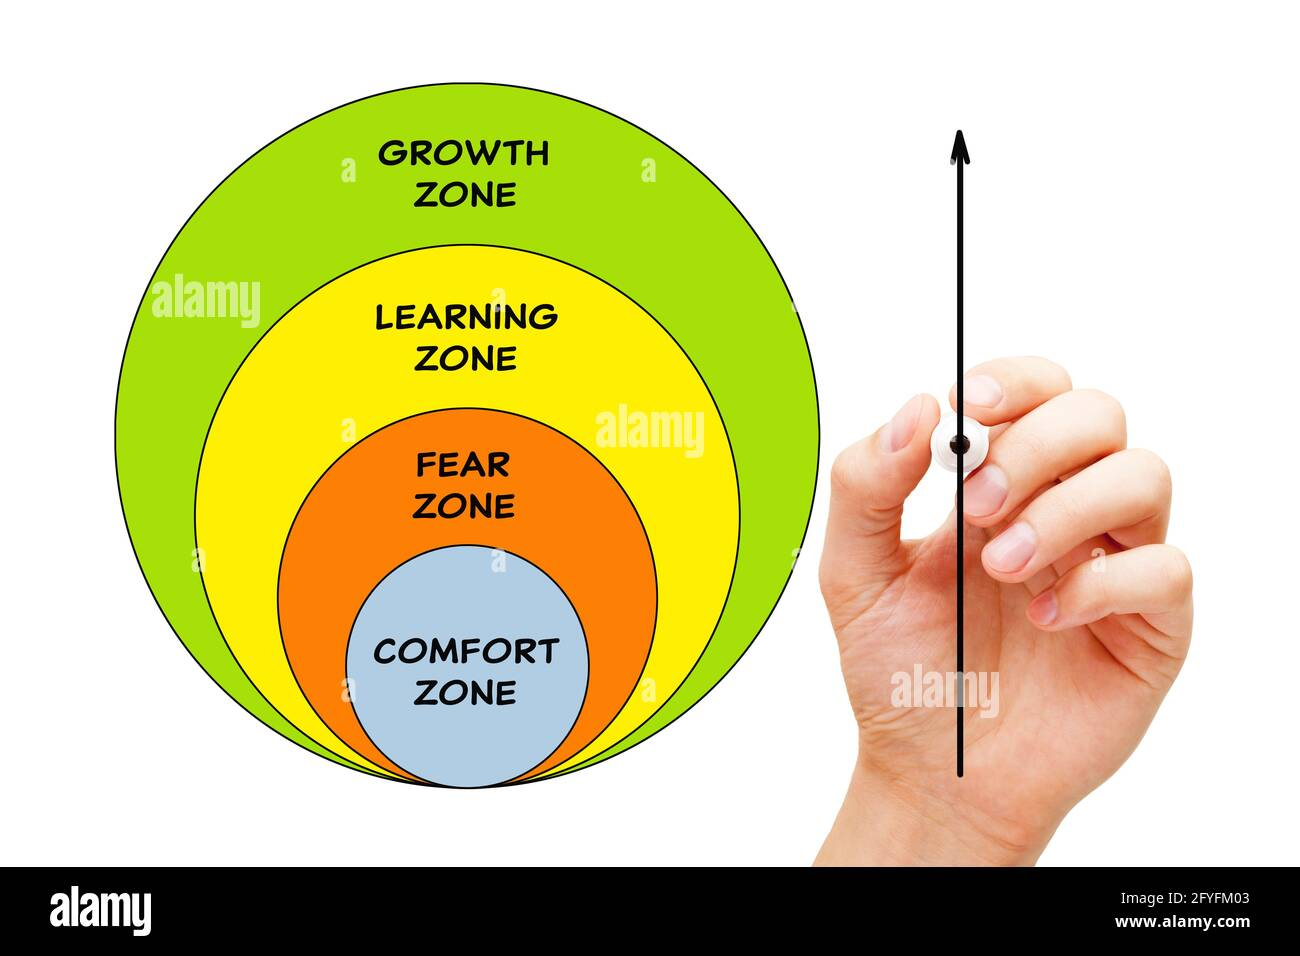 Hand drawing a conceptual diagram about leaving your comfort zone and developing growth mindset in order to achieve success in life. Stock Photo